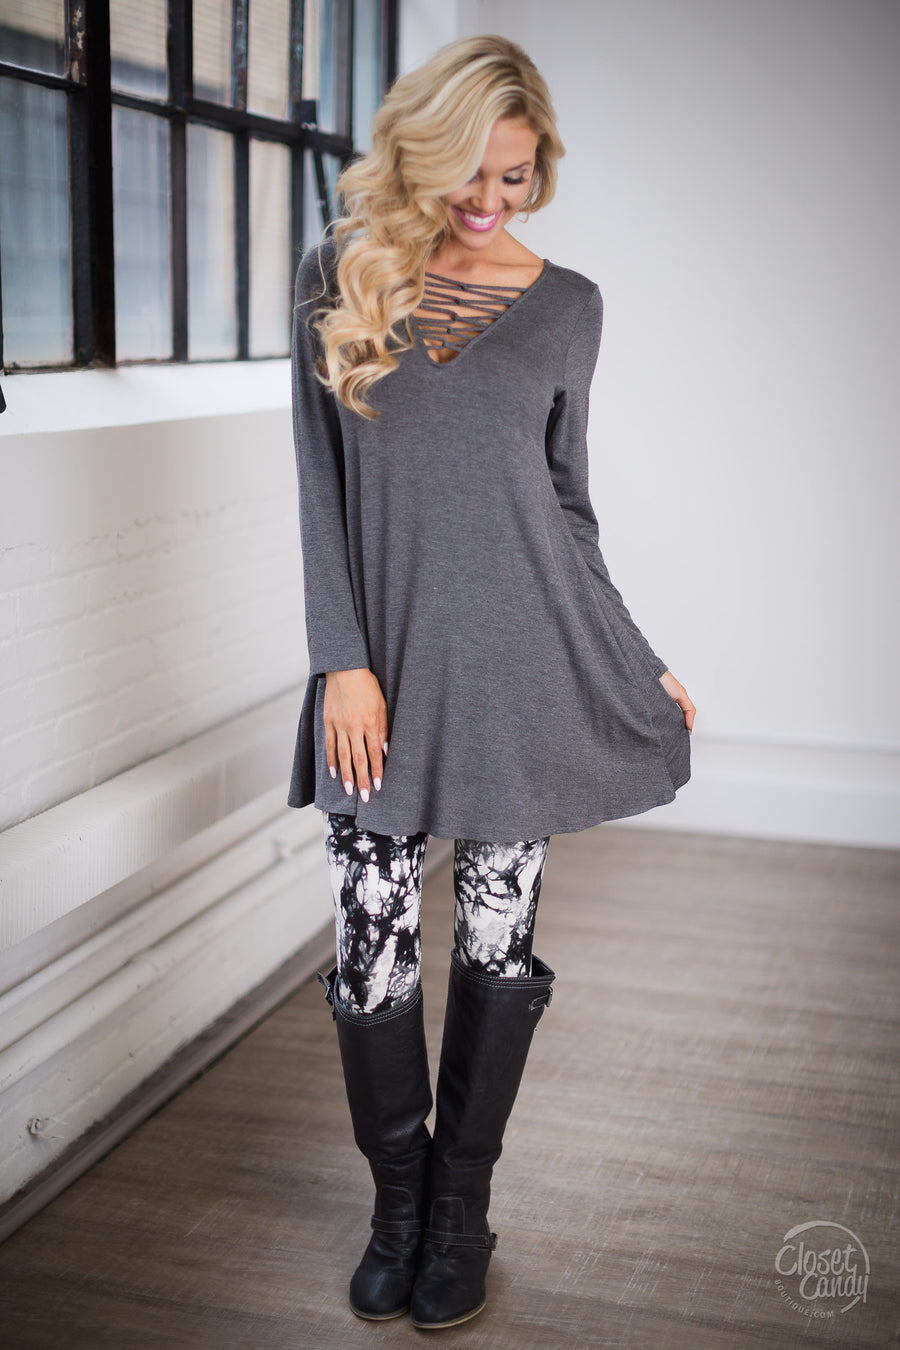 Stay You Criss-Cross Tunic Dress - Charcoal